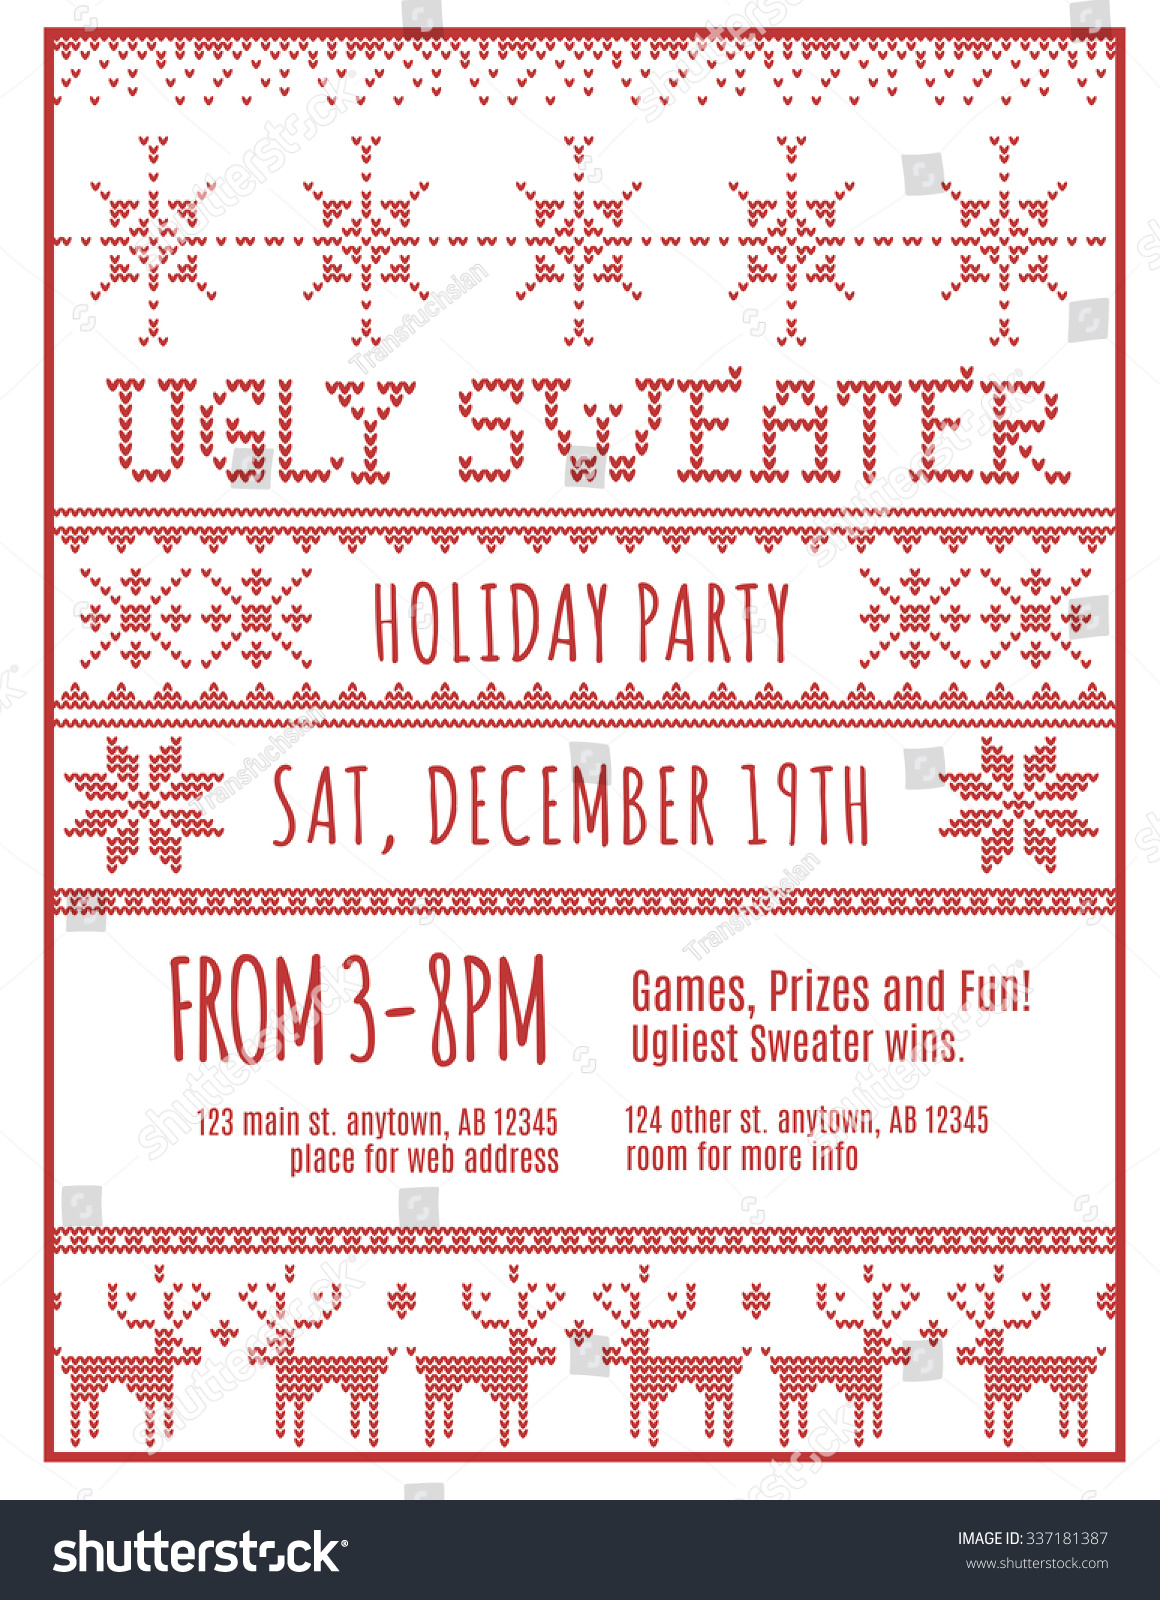 White Christmas Party Invitations Images - Party Invitations Ideas